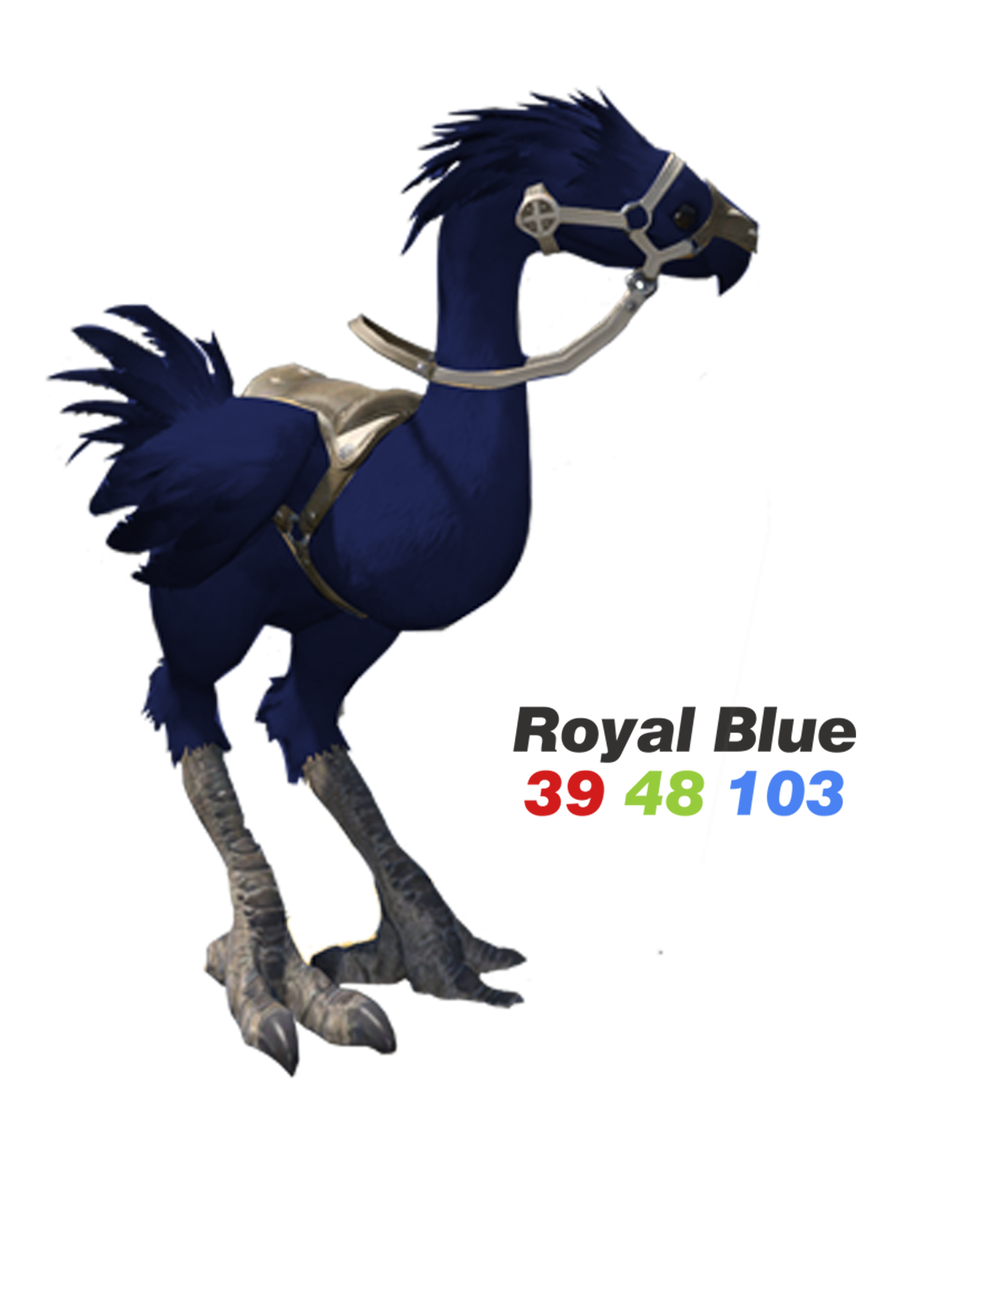 014Royal.png